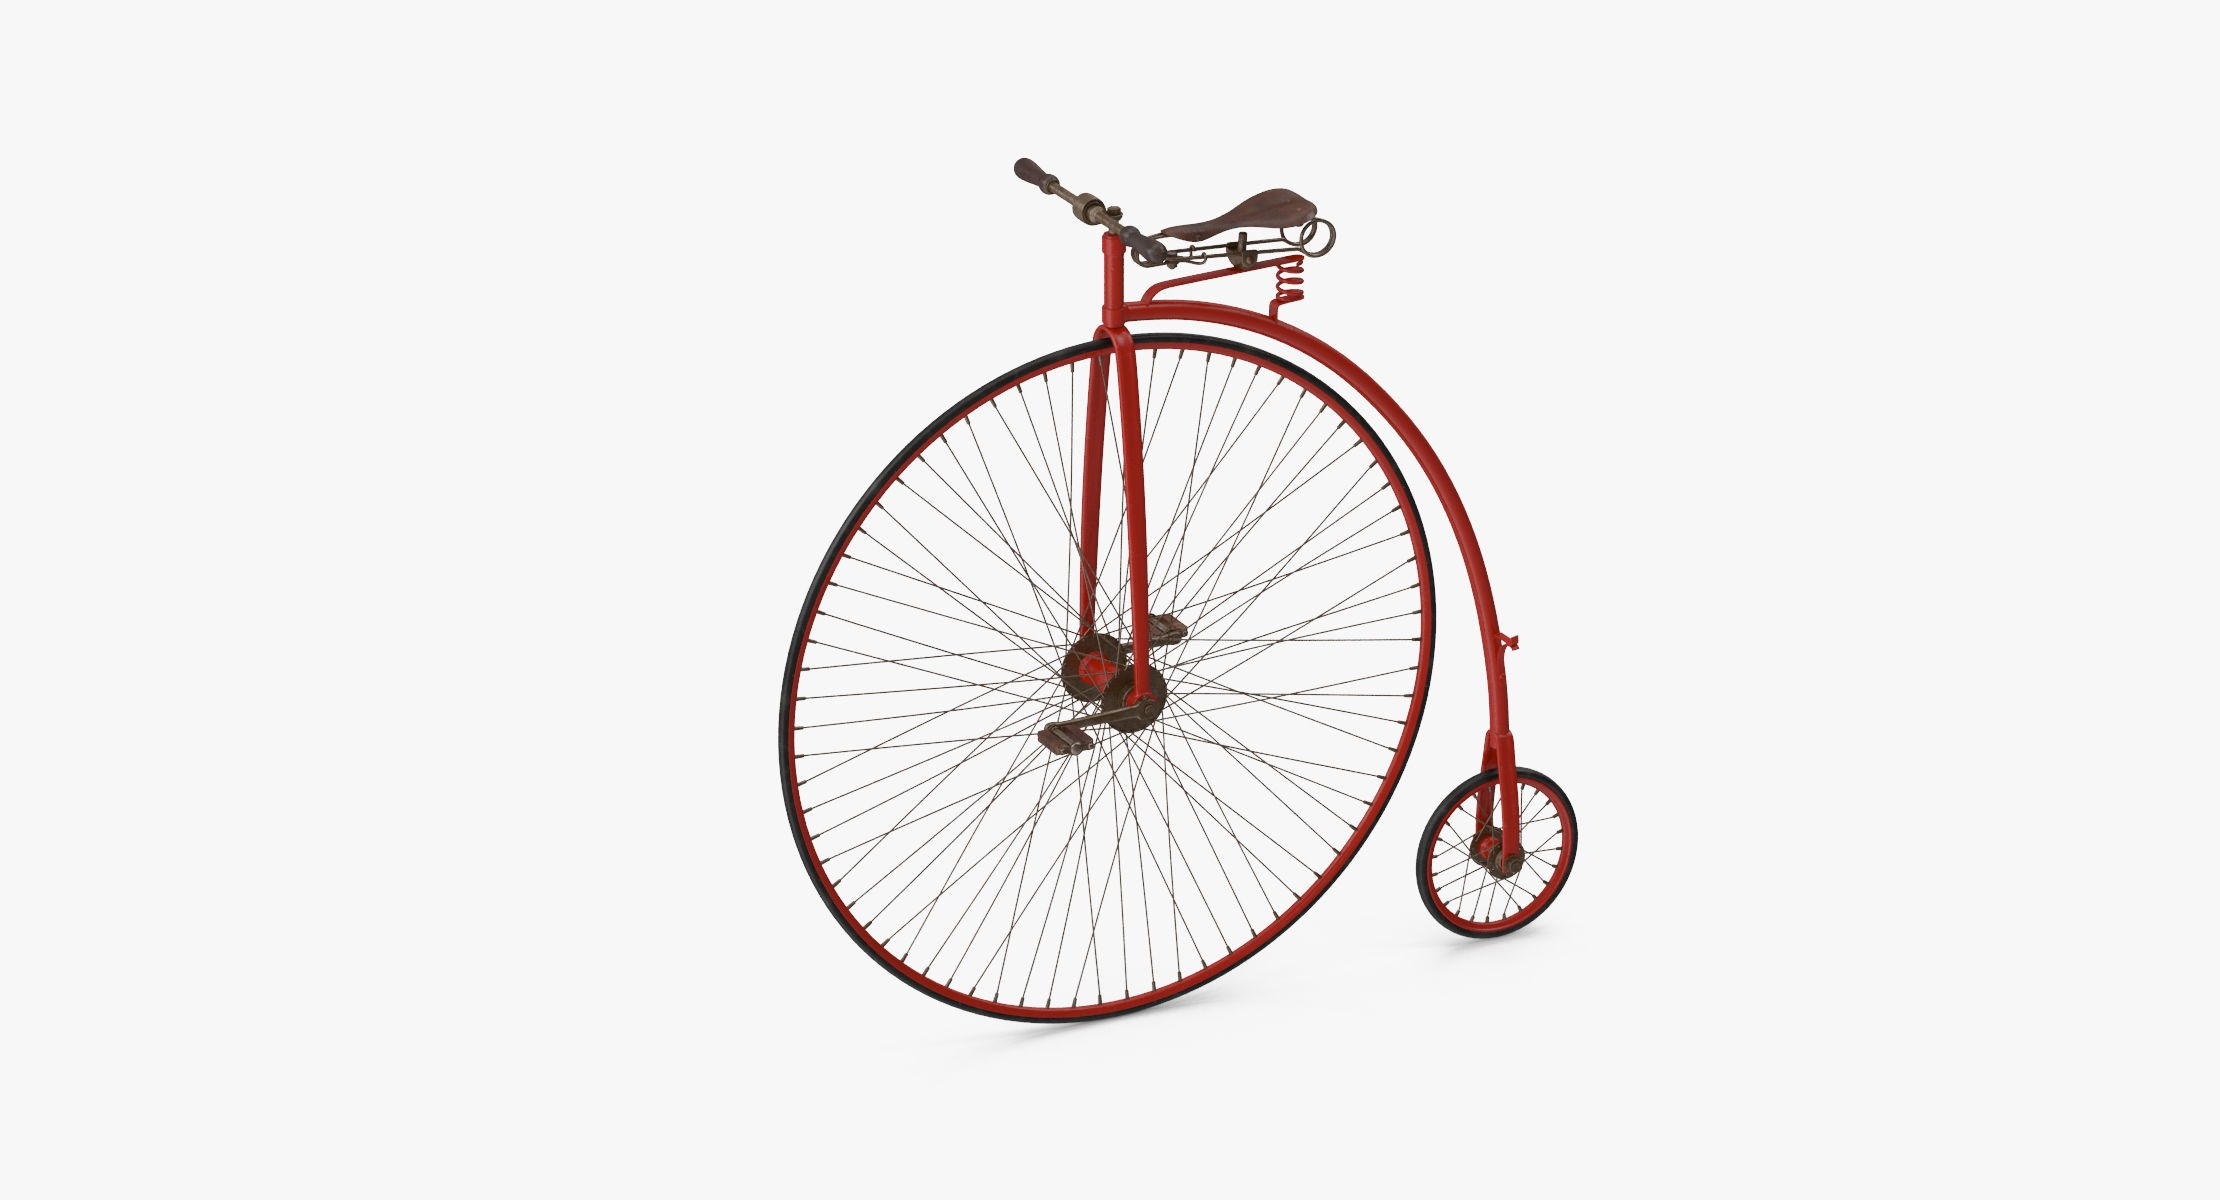 Penny Farthing Bicycle - reel 1